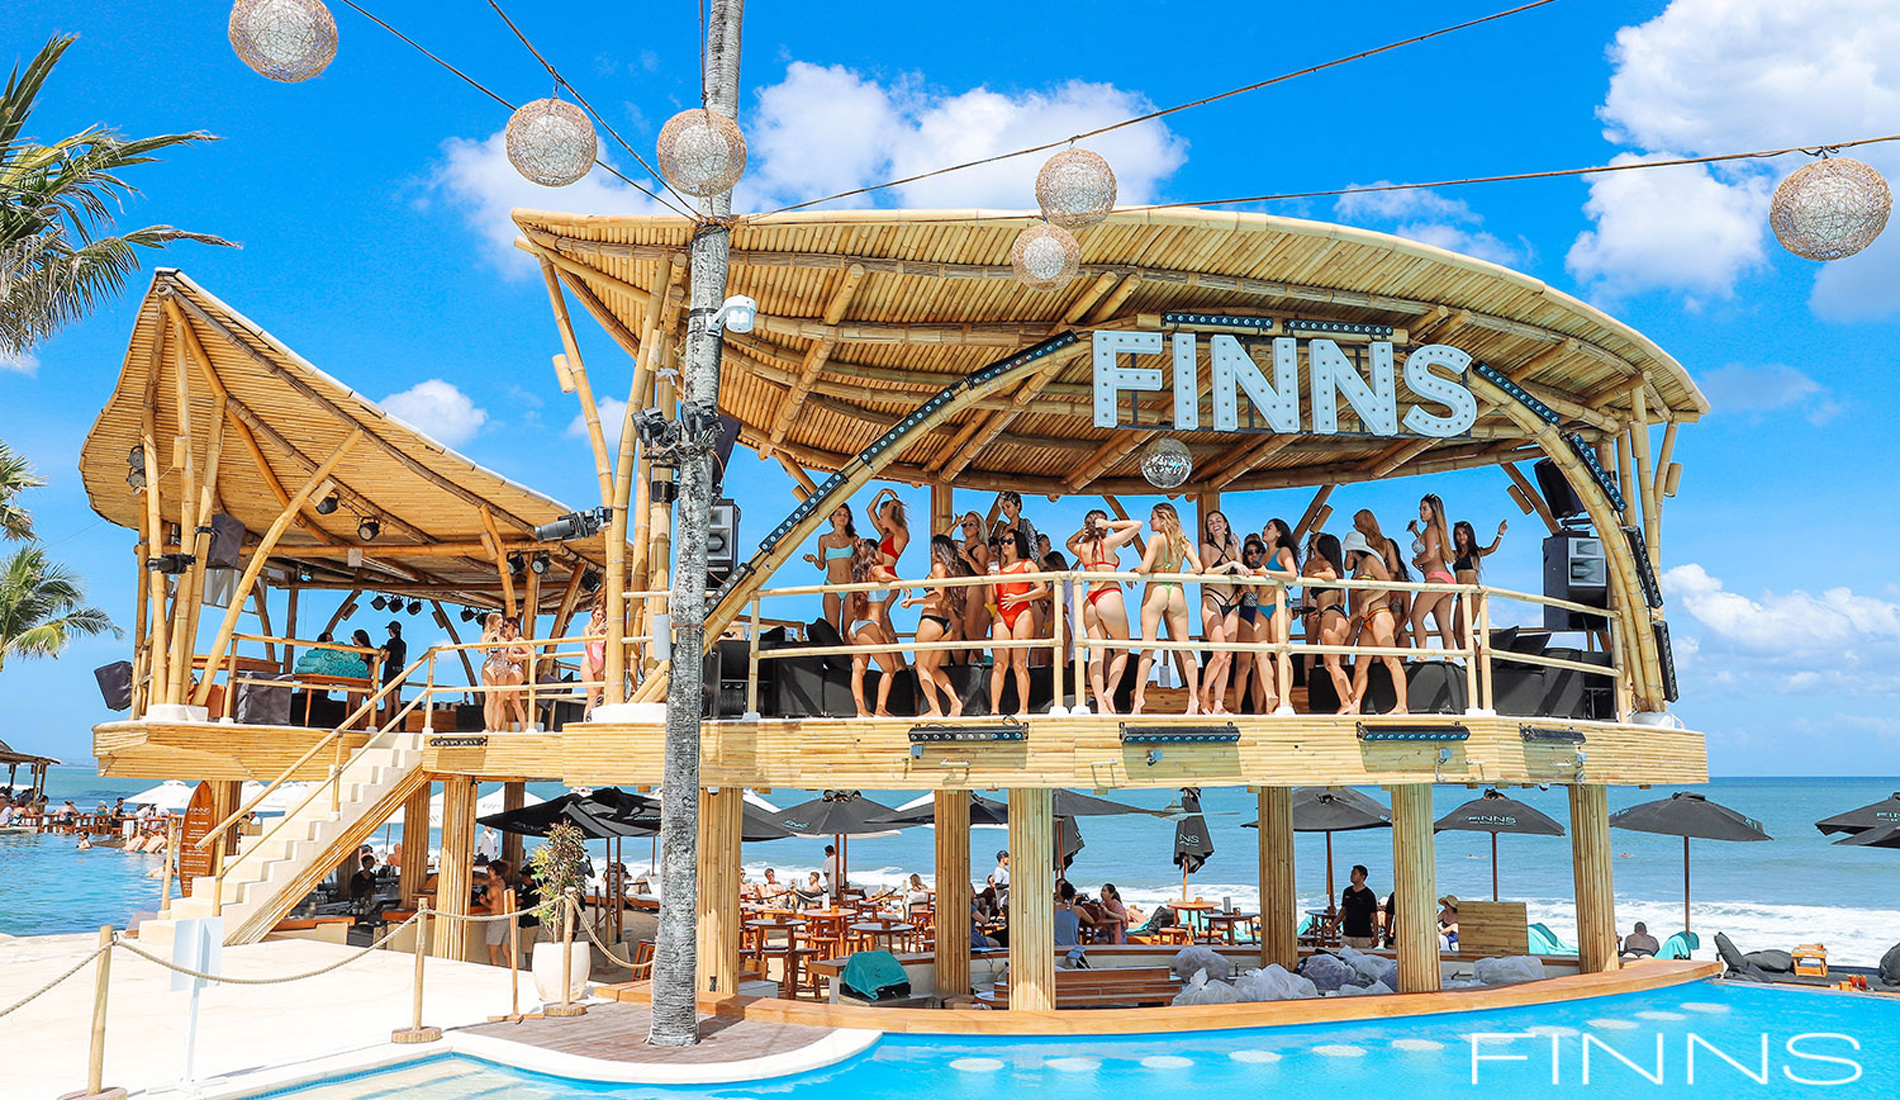 Finns Party Platform Club - Things To Do in Bali Tours Activities